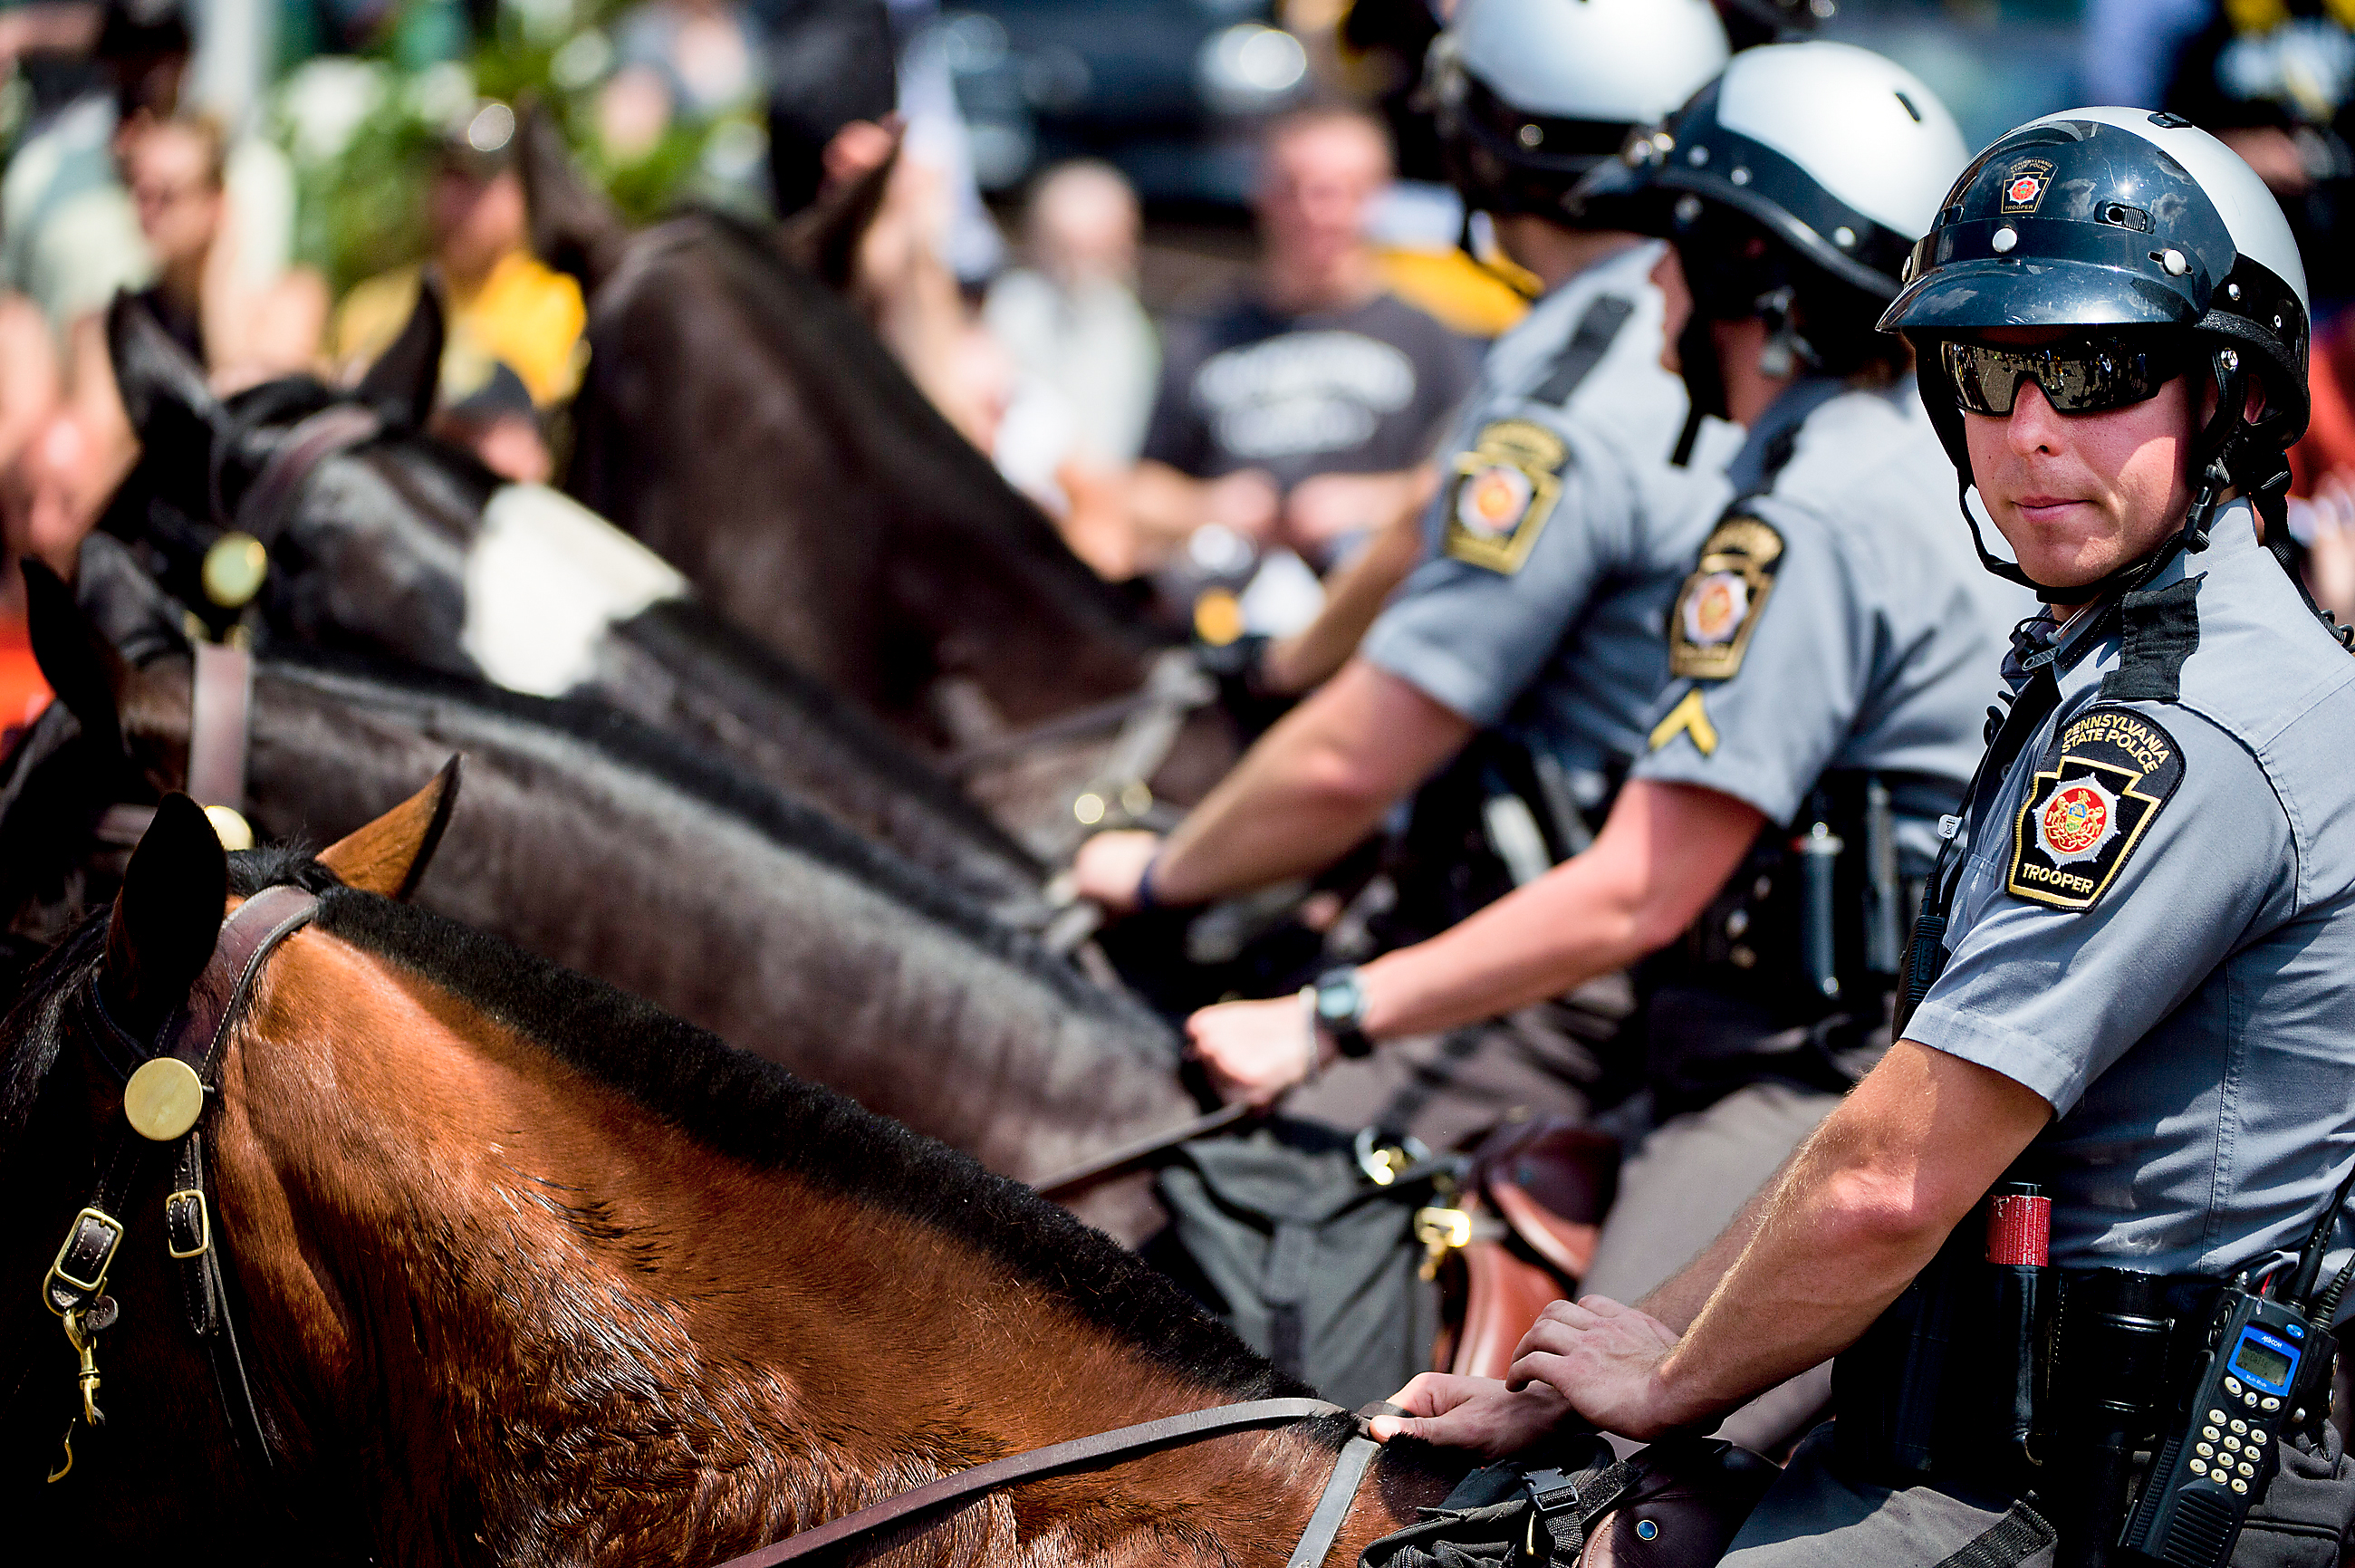 20170614scPoliceHorse01 Police horses ride in the Penguins victory parade on Wednesday at Grant Street and Boulevard of the Allies.